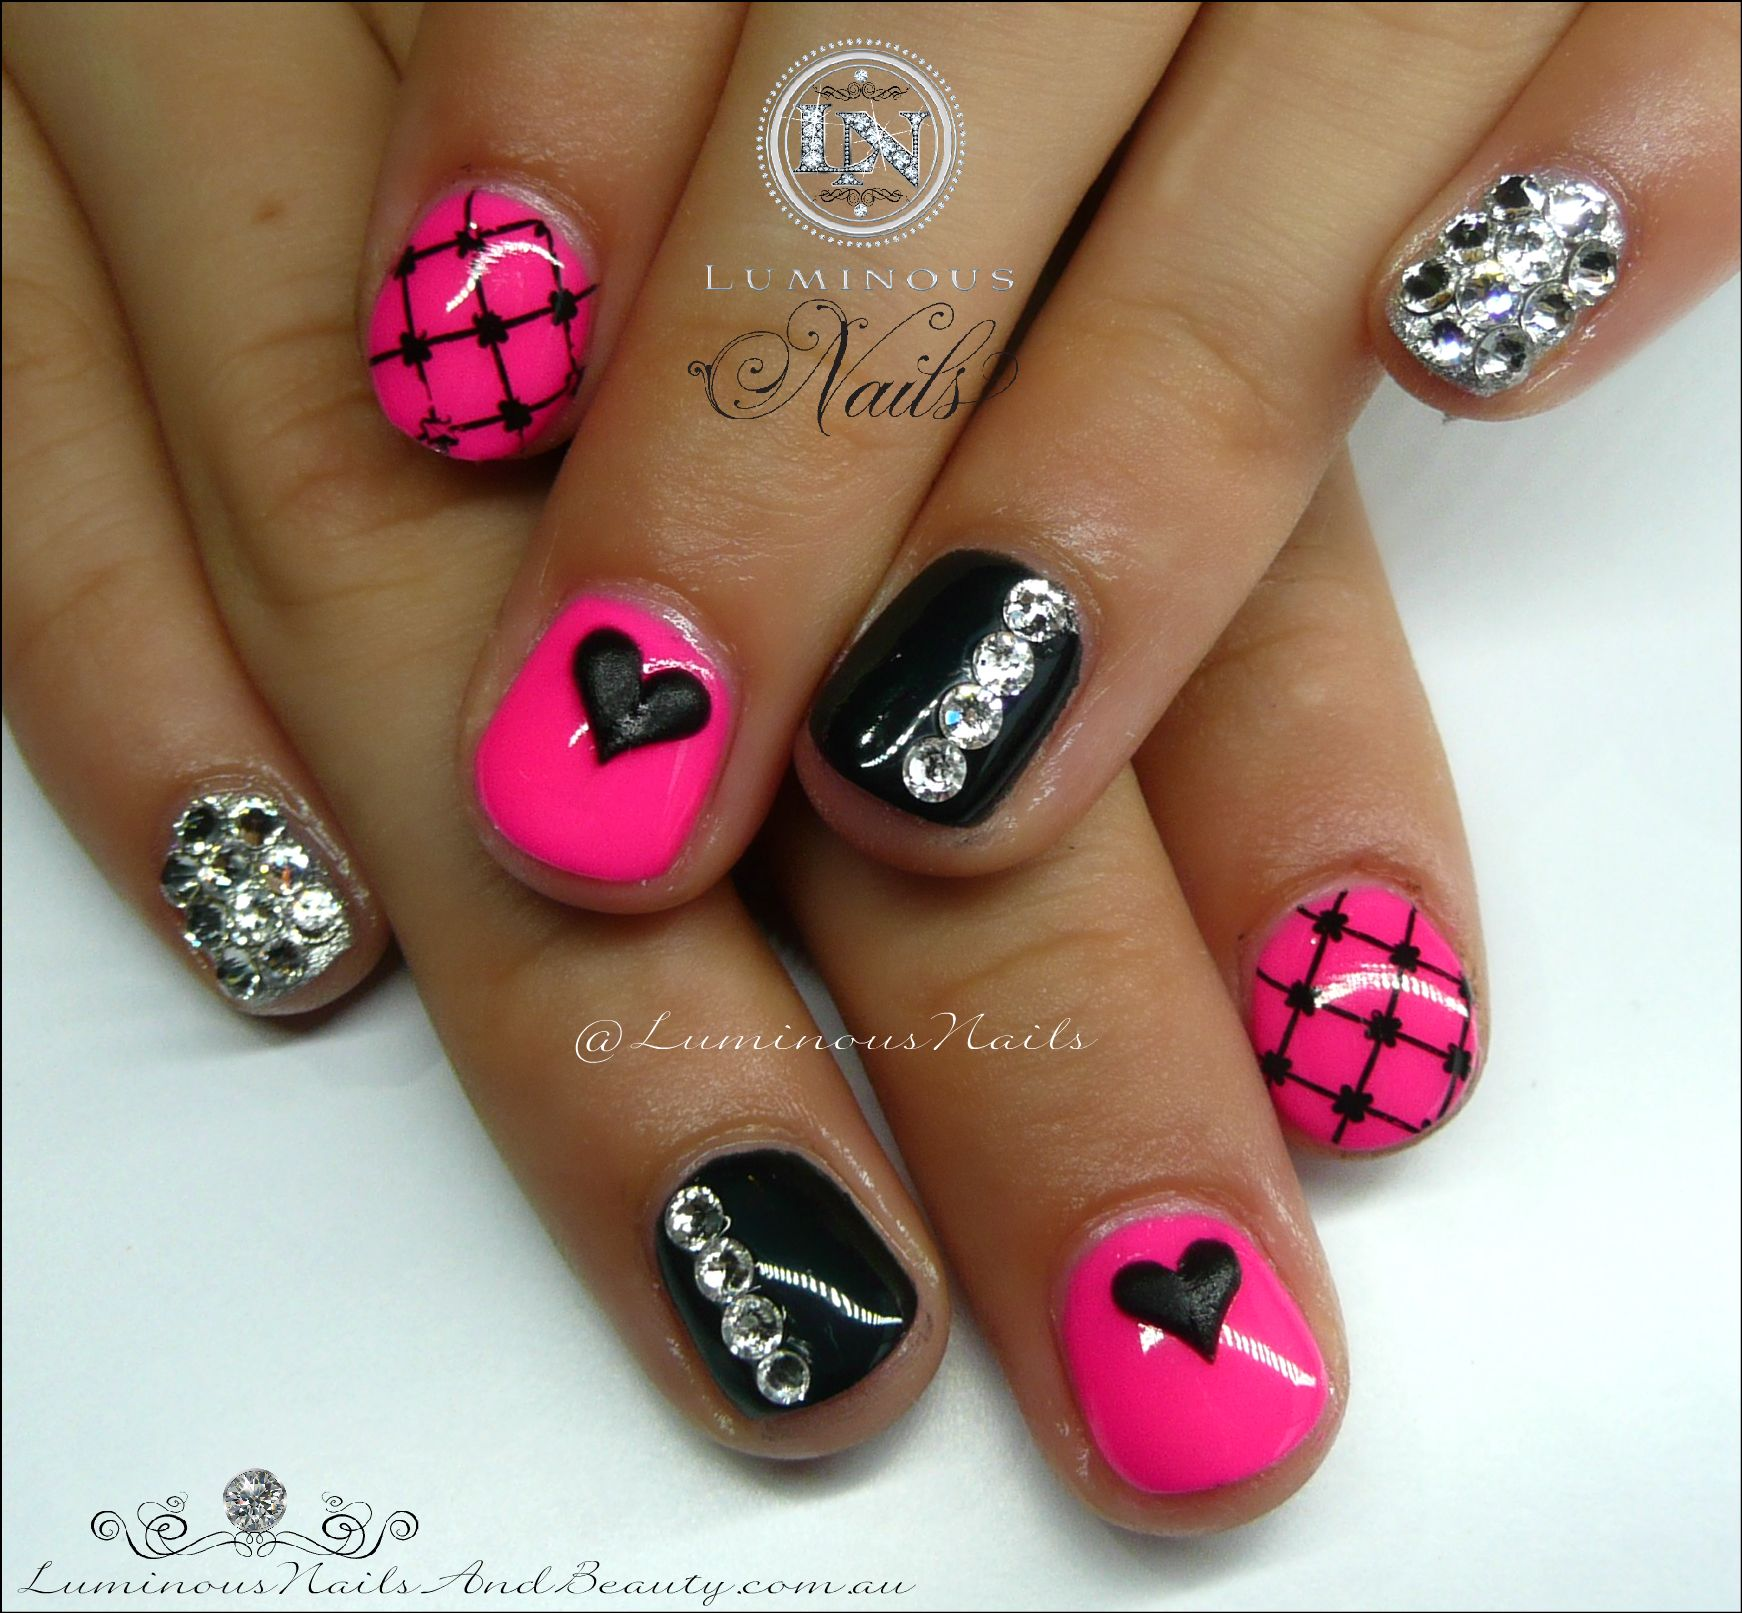 Cute Pink & Black Gel Nails for a Cute Little Girl | Nail-mazing ...